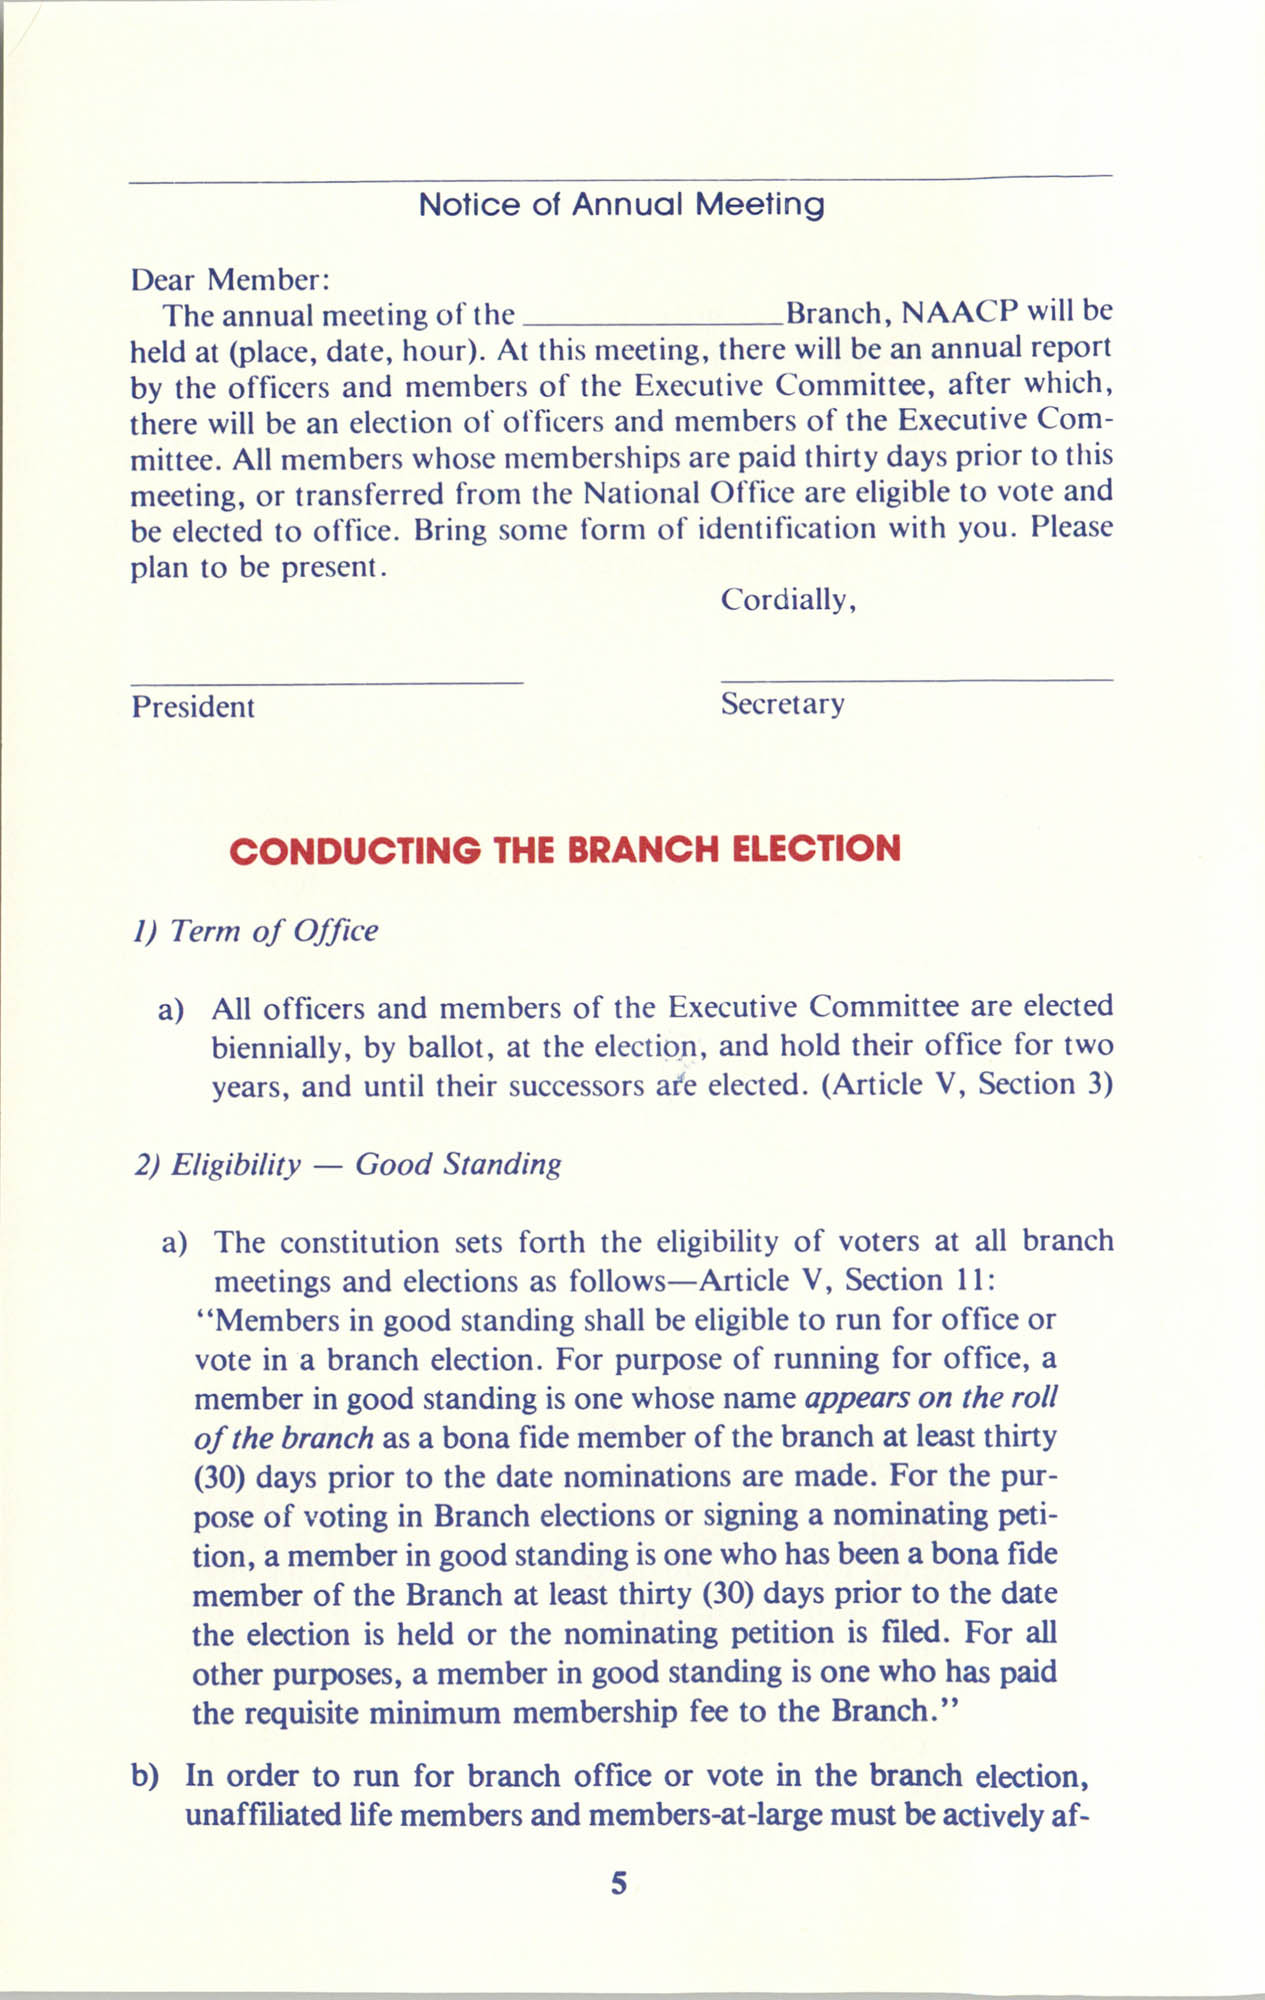 Manual on Branch Election Procedure, Page 5